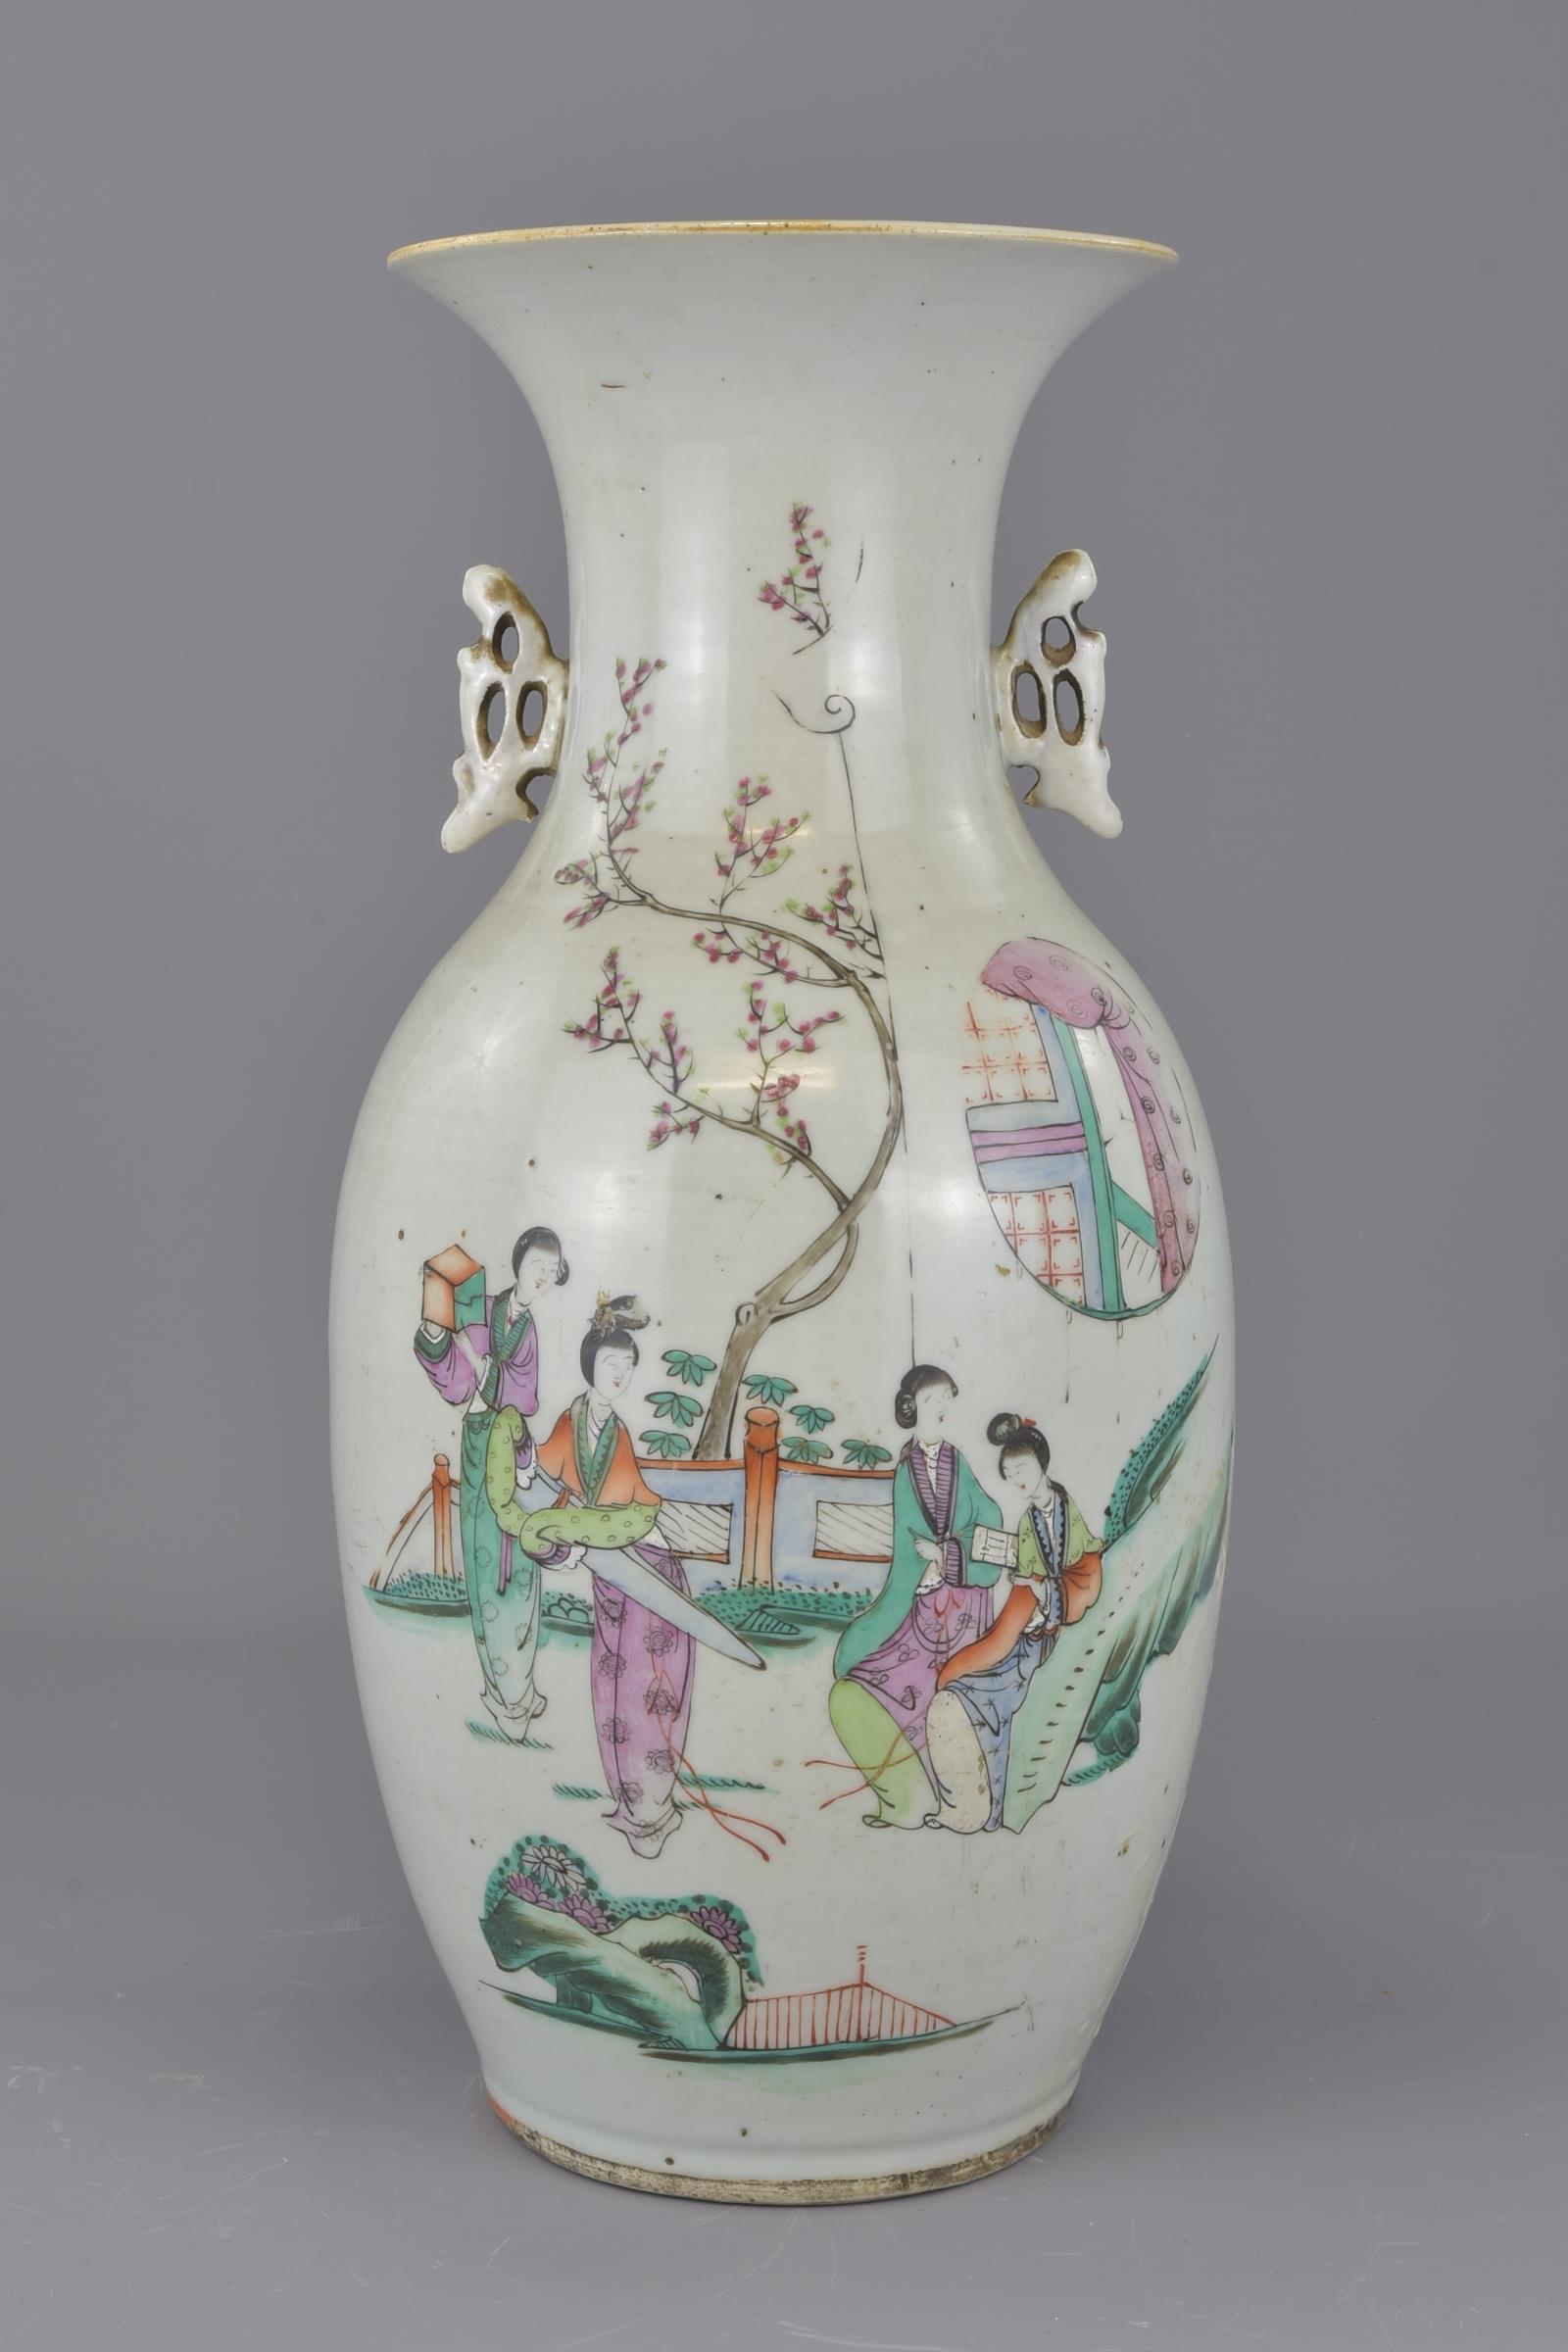 Lot 28 - A Chinese Republican period famille-rose porcelain vase. 43 cm tall.